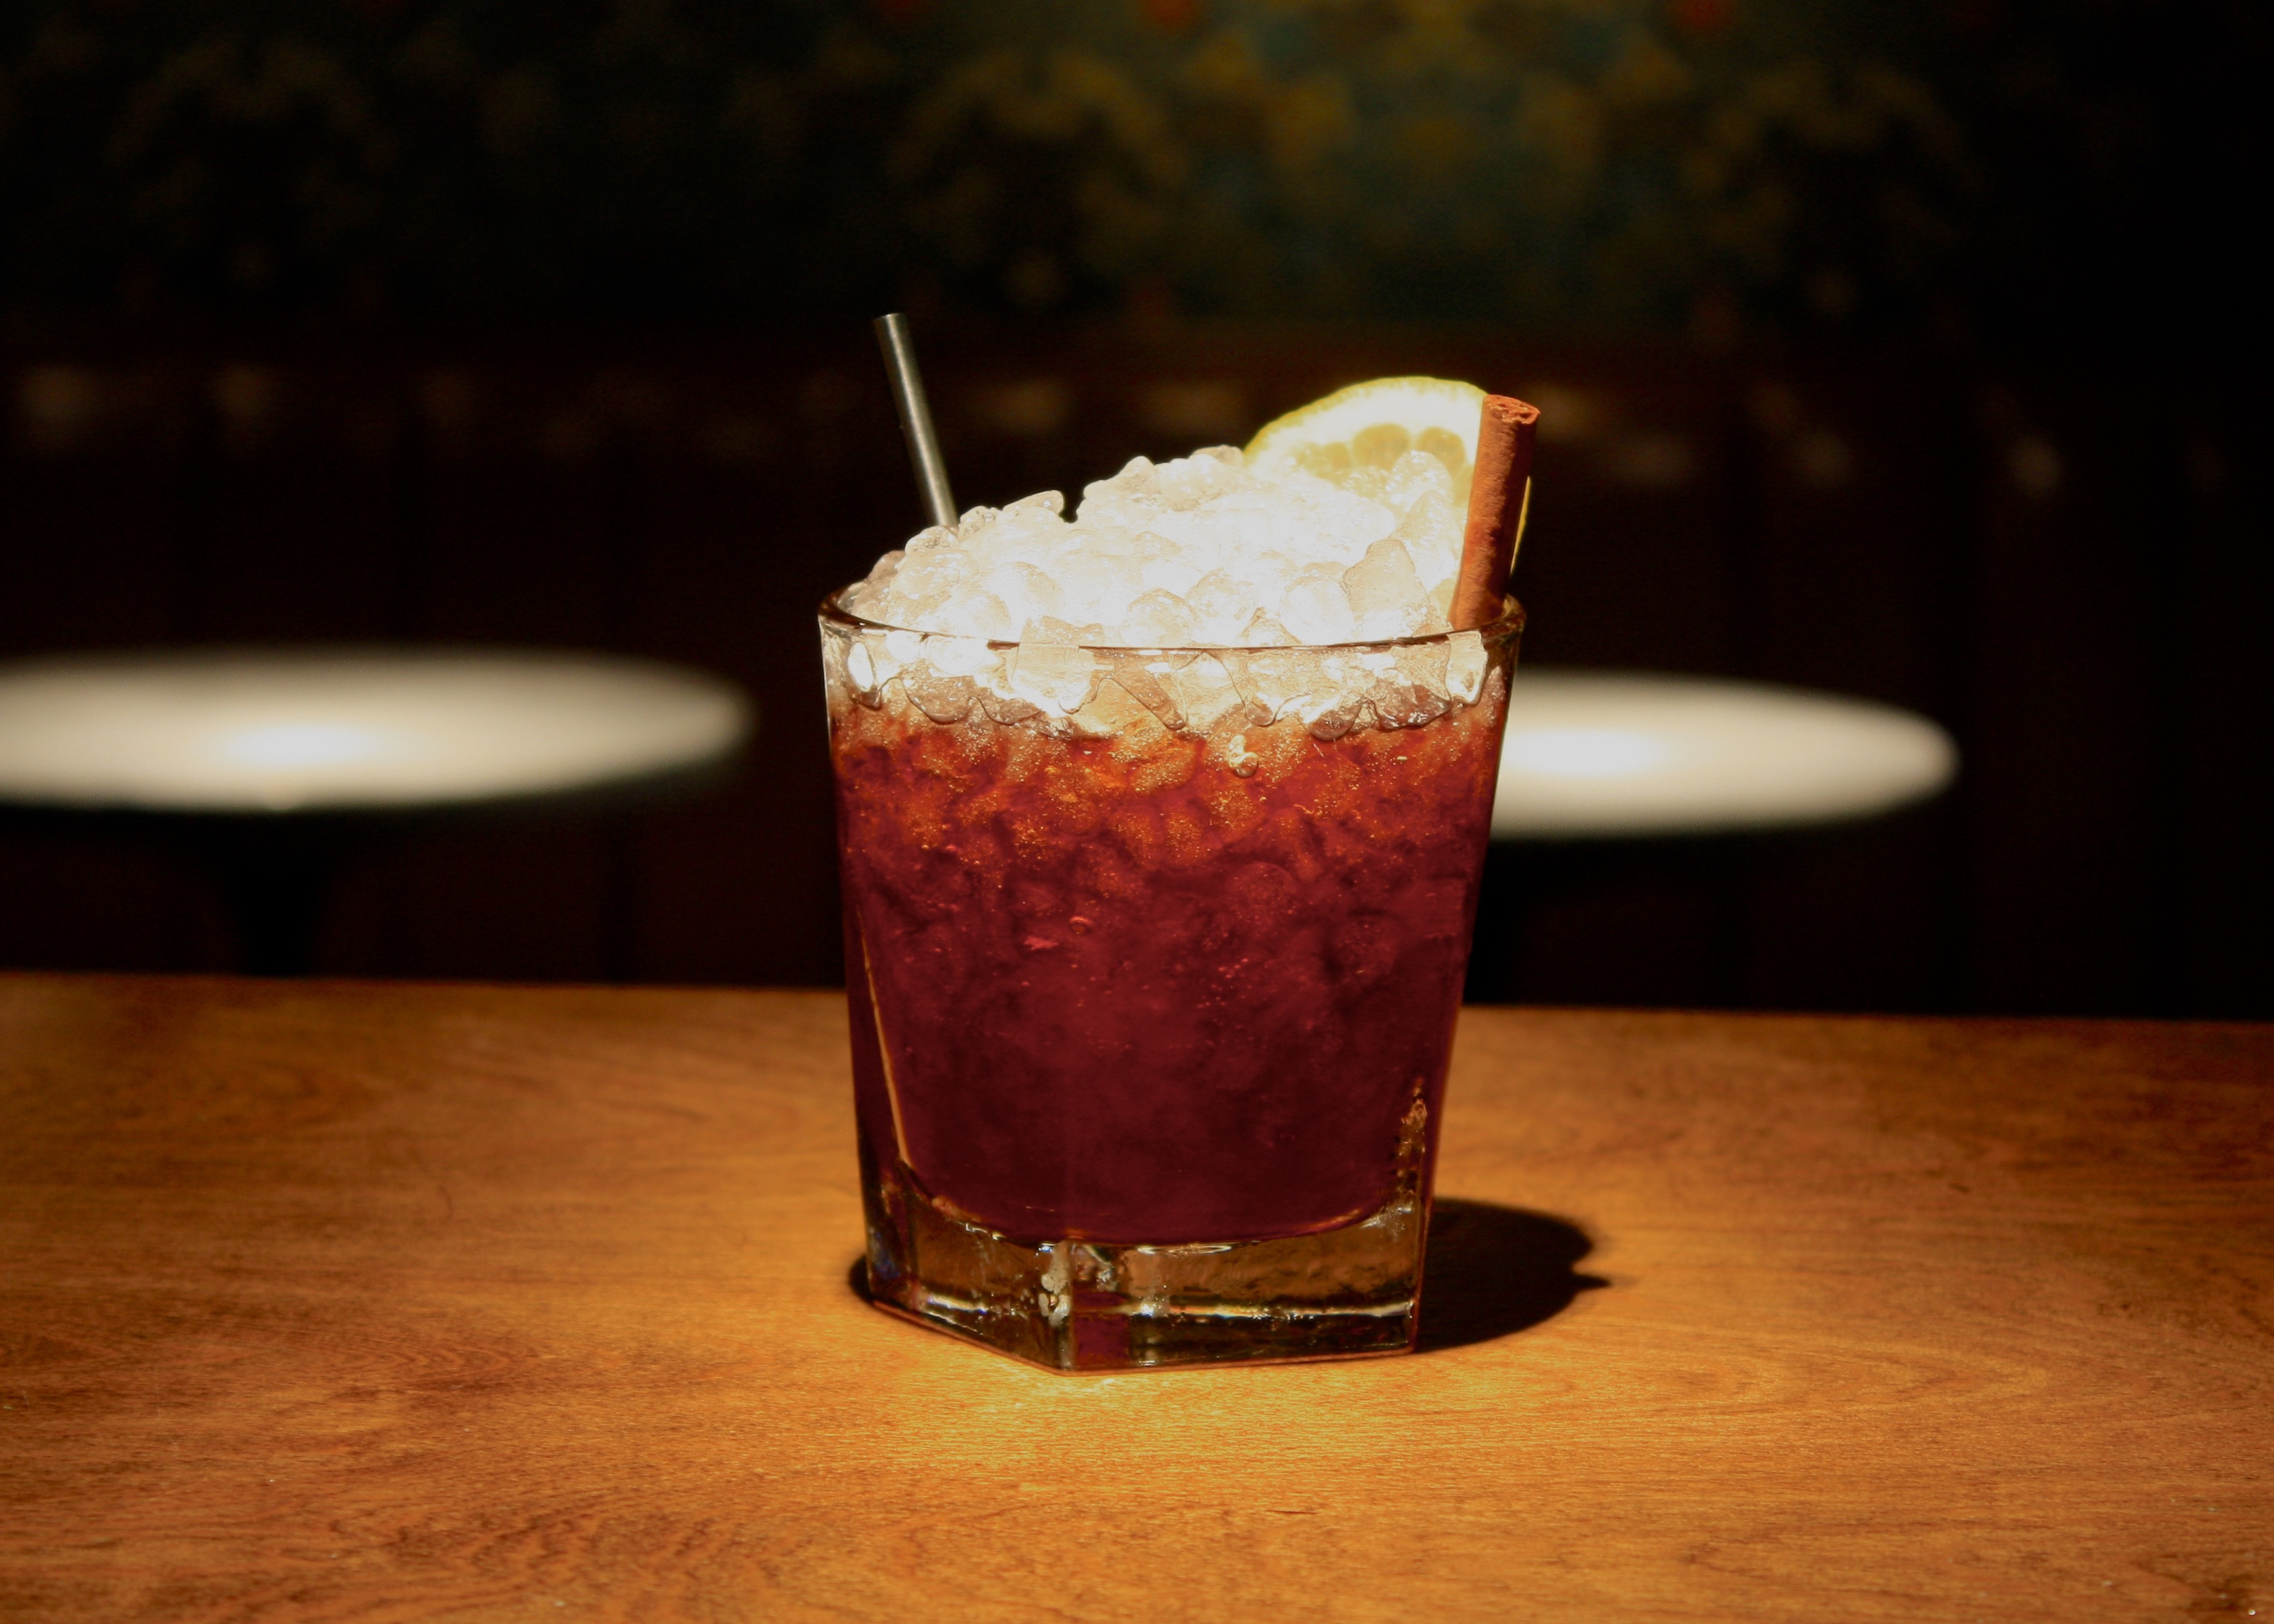 Warm up inside with a port cocktail